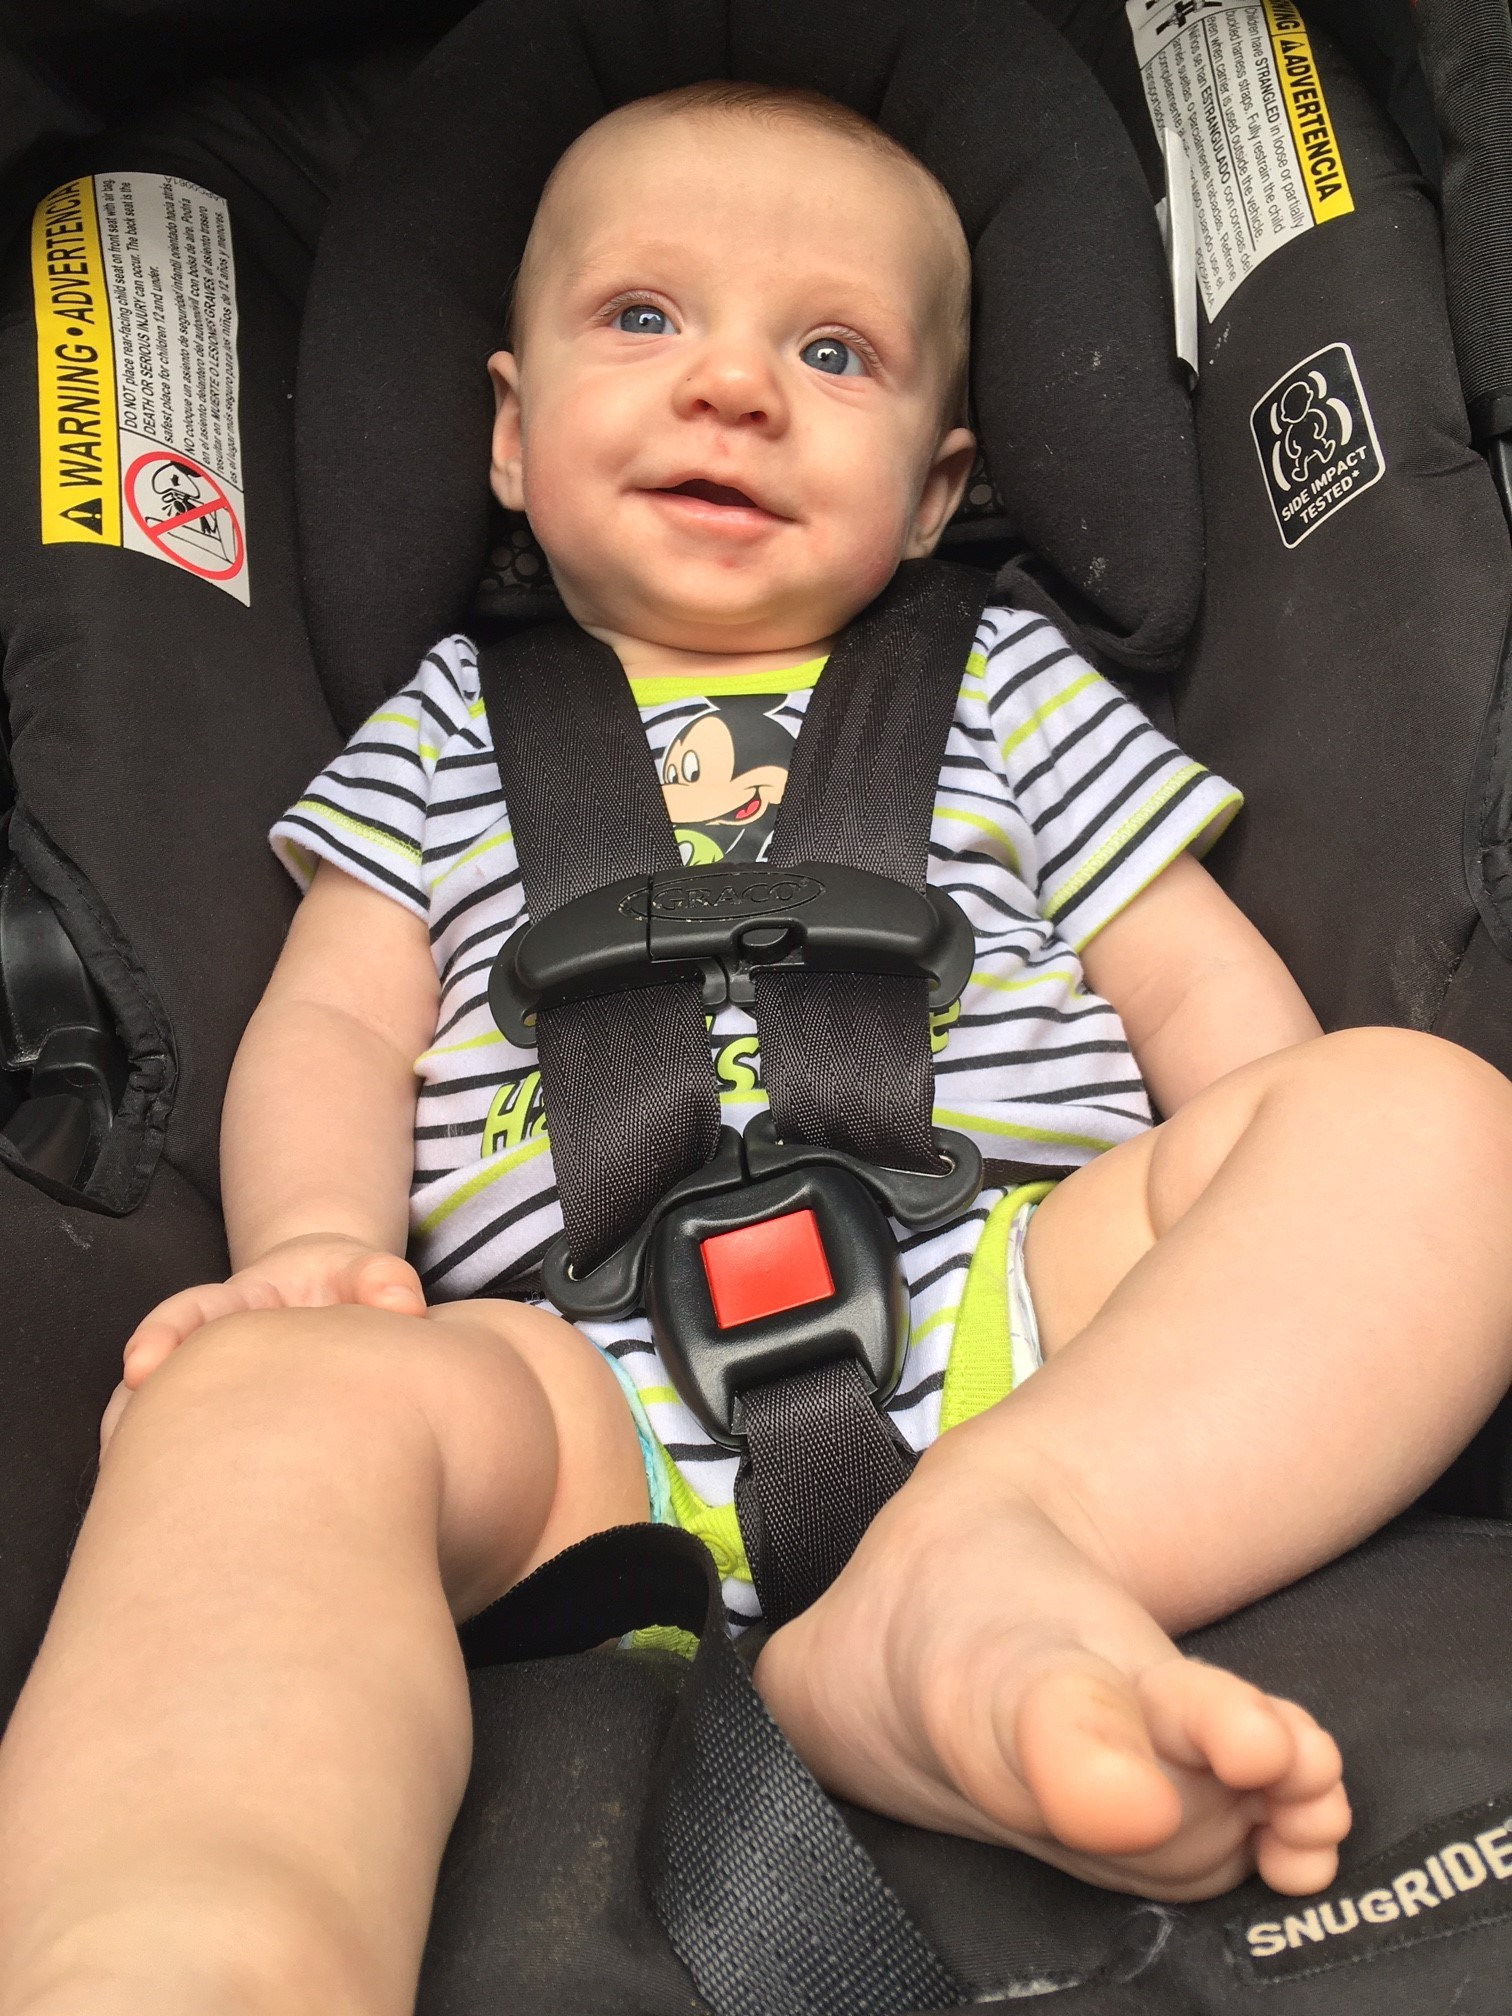 Kolten likes going for rides in his carseat.